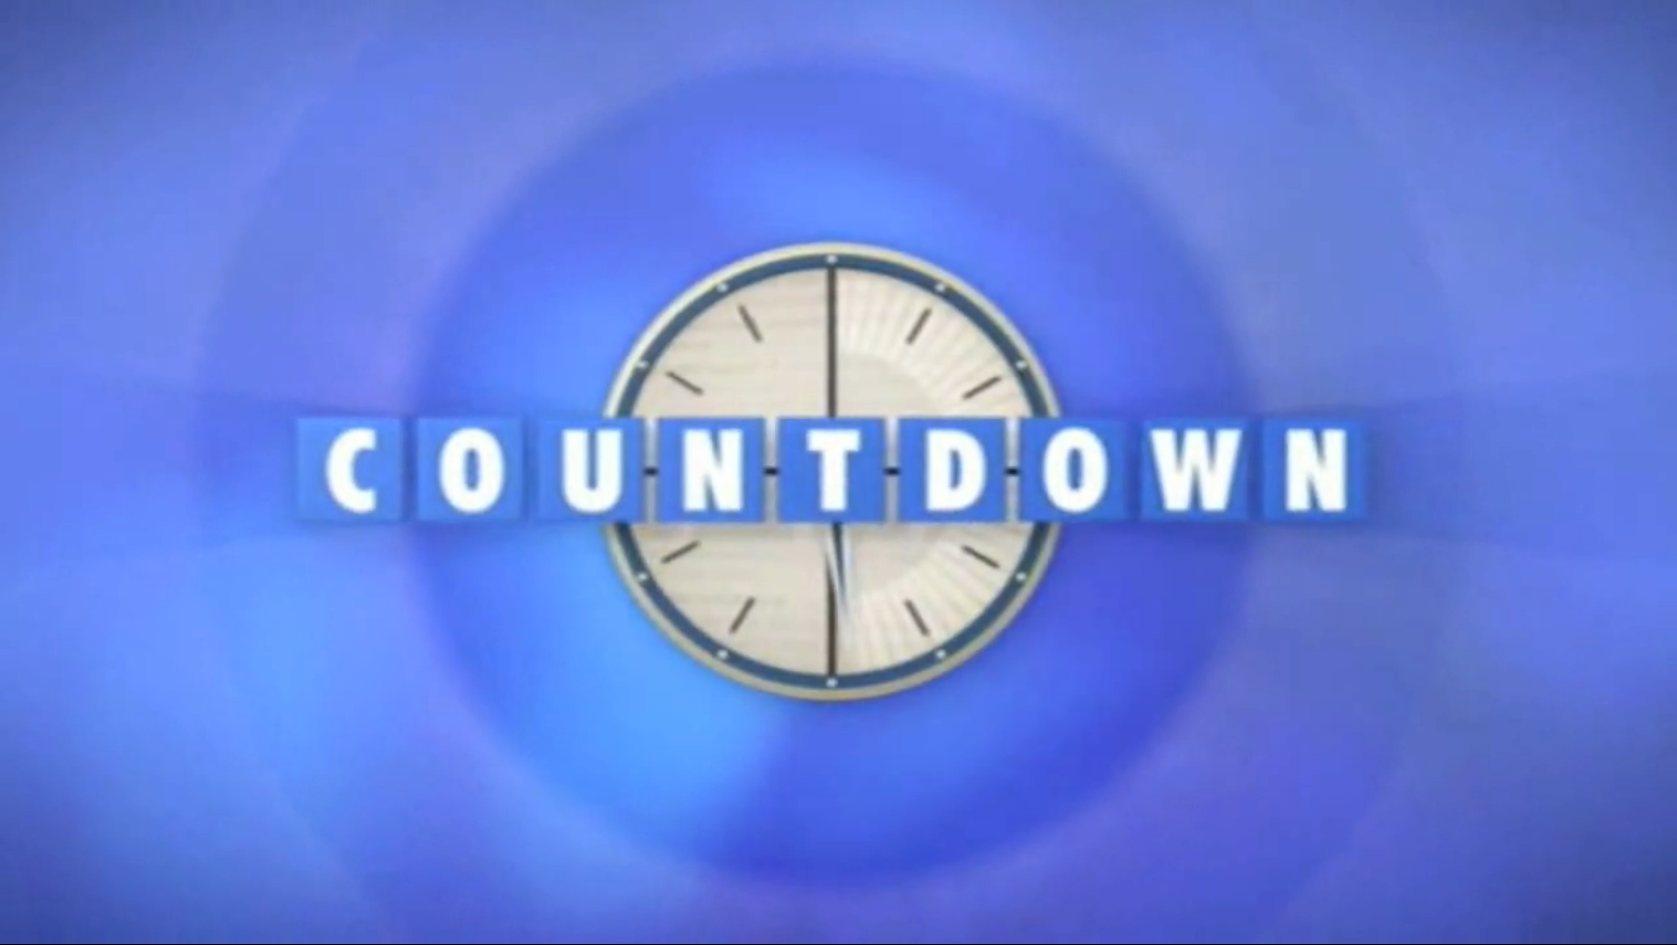 20 the countdown magazine 11 00 am to 1 00 pm by john rivers